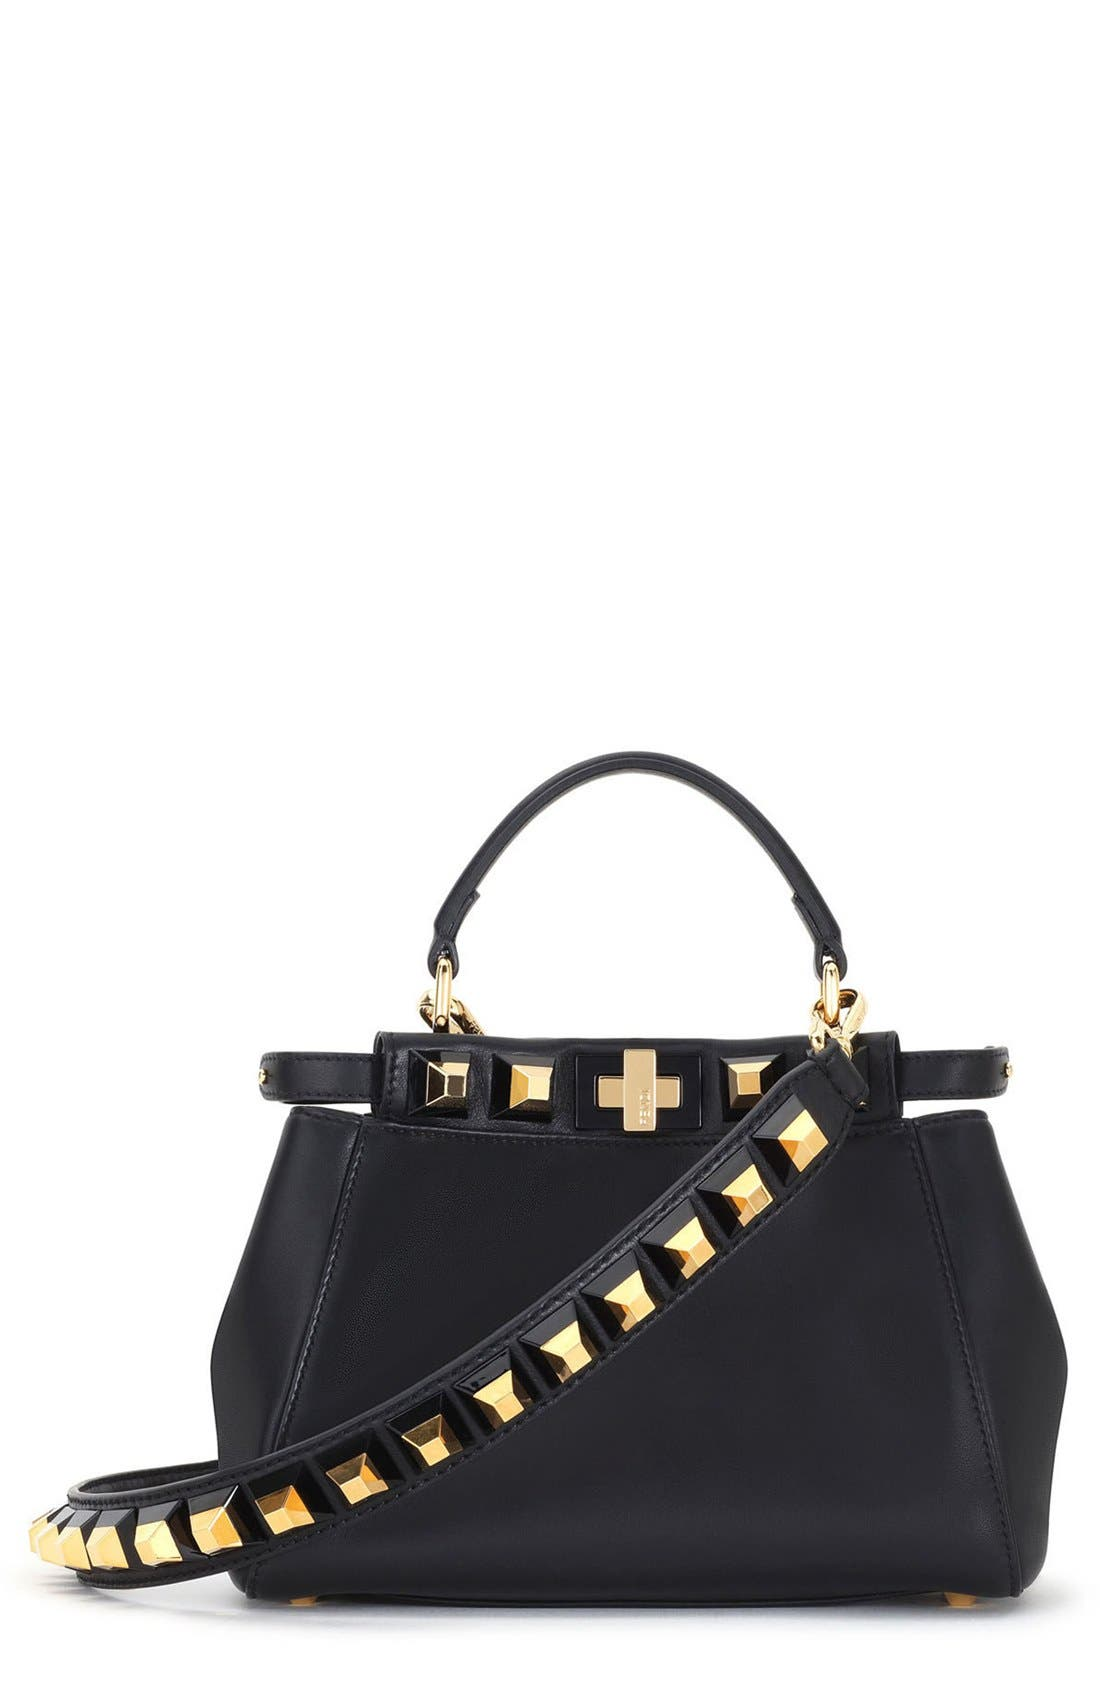 Alternate Image 1 Selected - Fendi Mini Peekaboo Studded Leather Bag